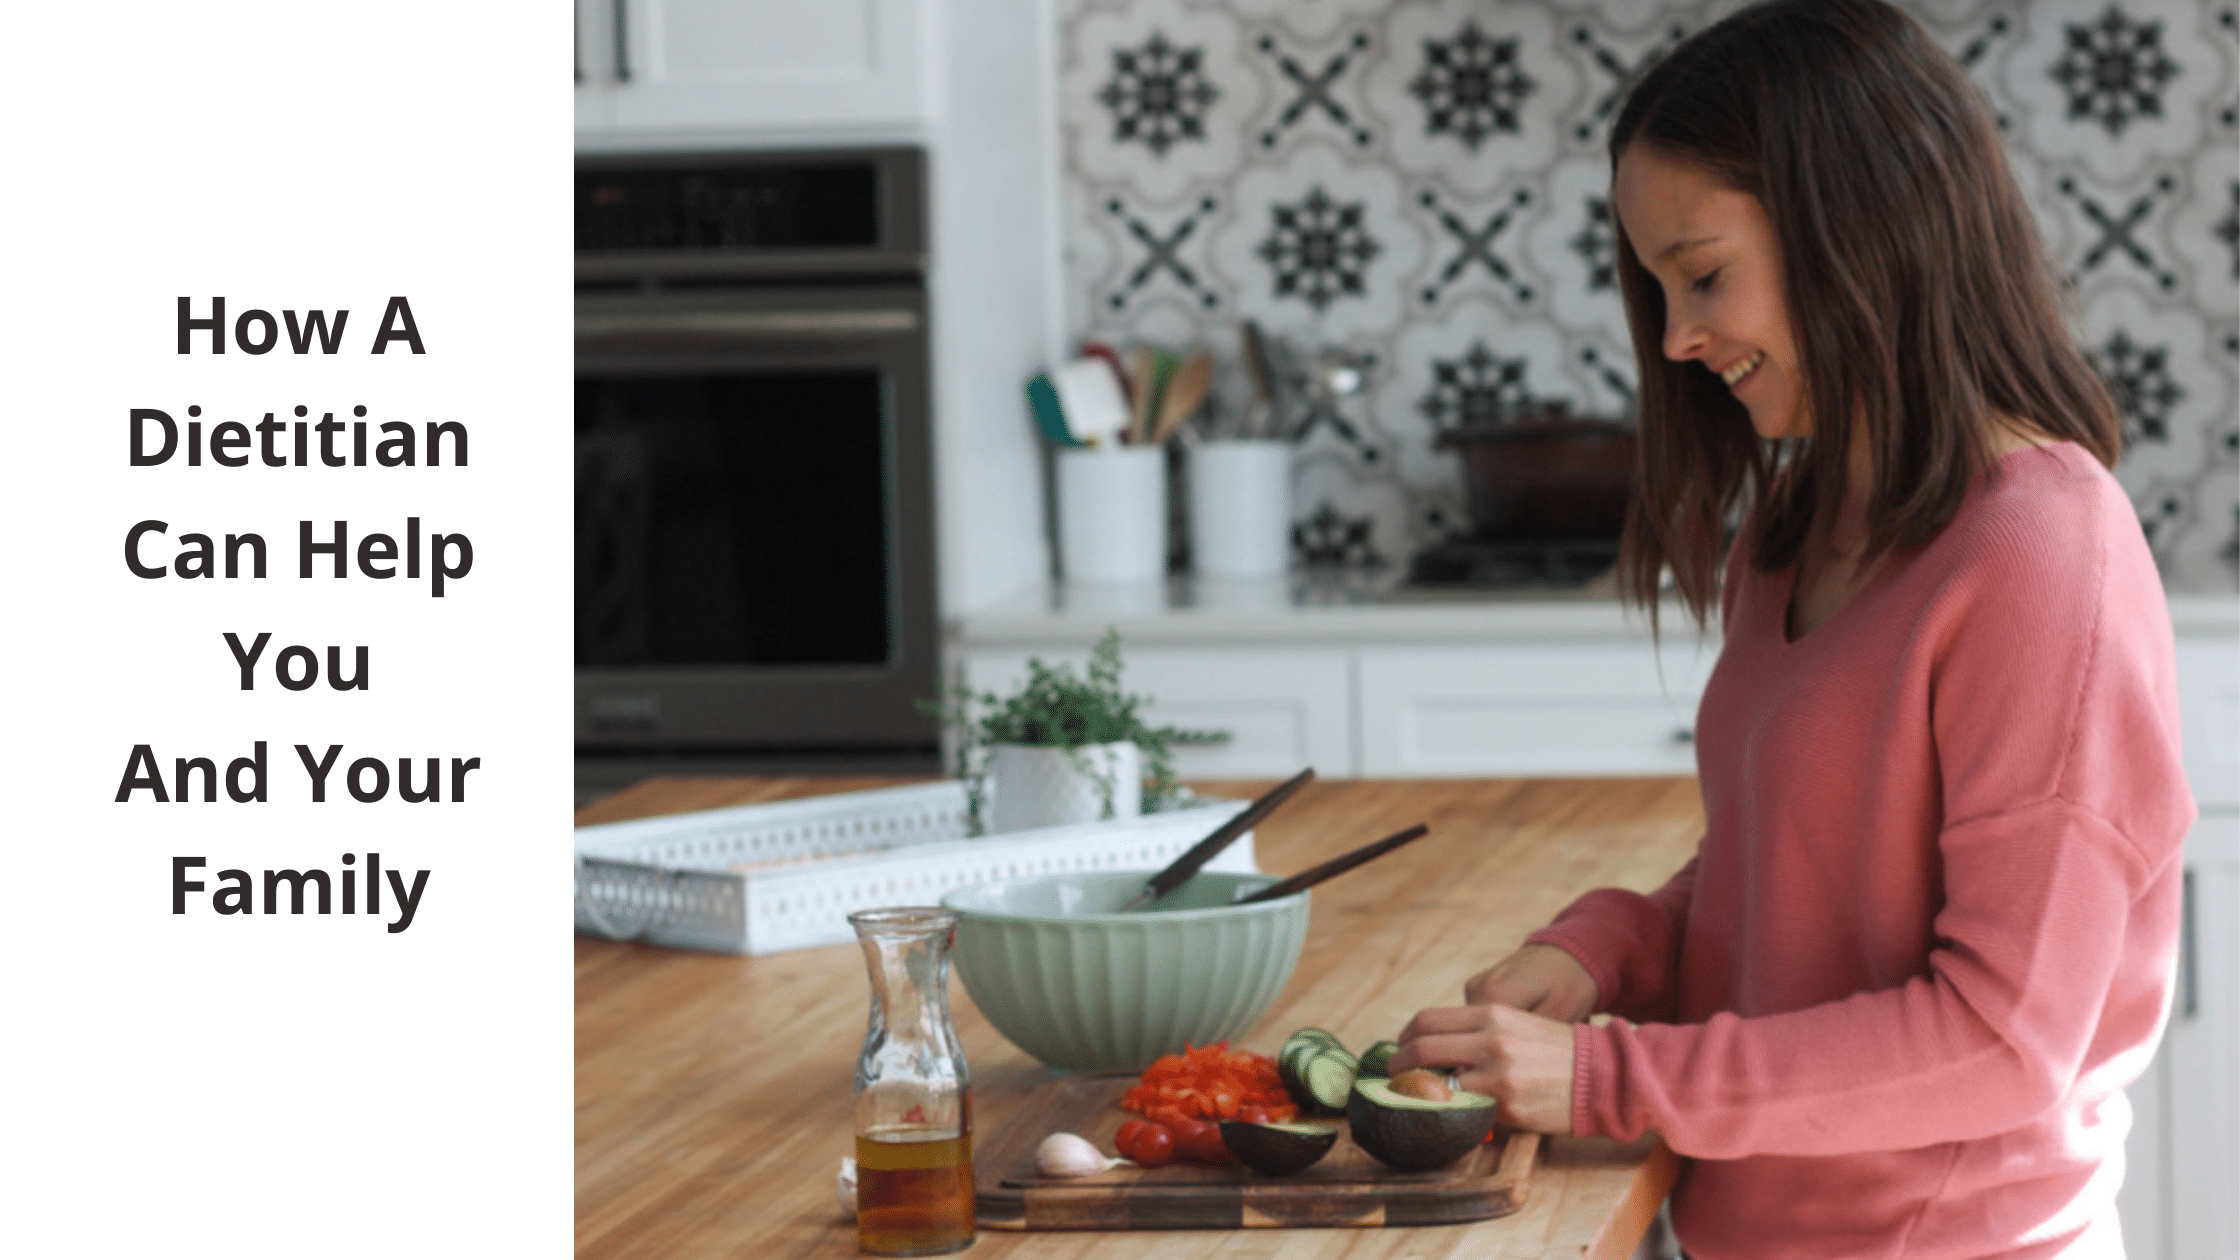 How a dietitian can help you and your family